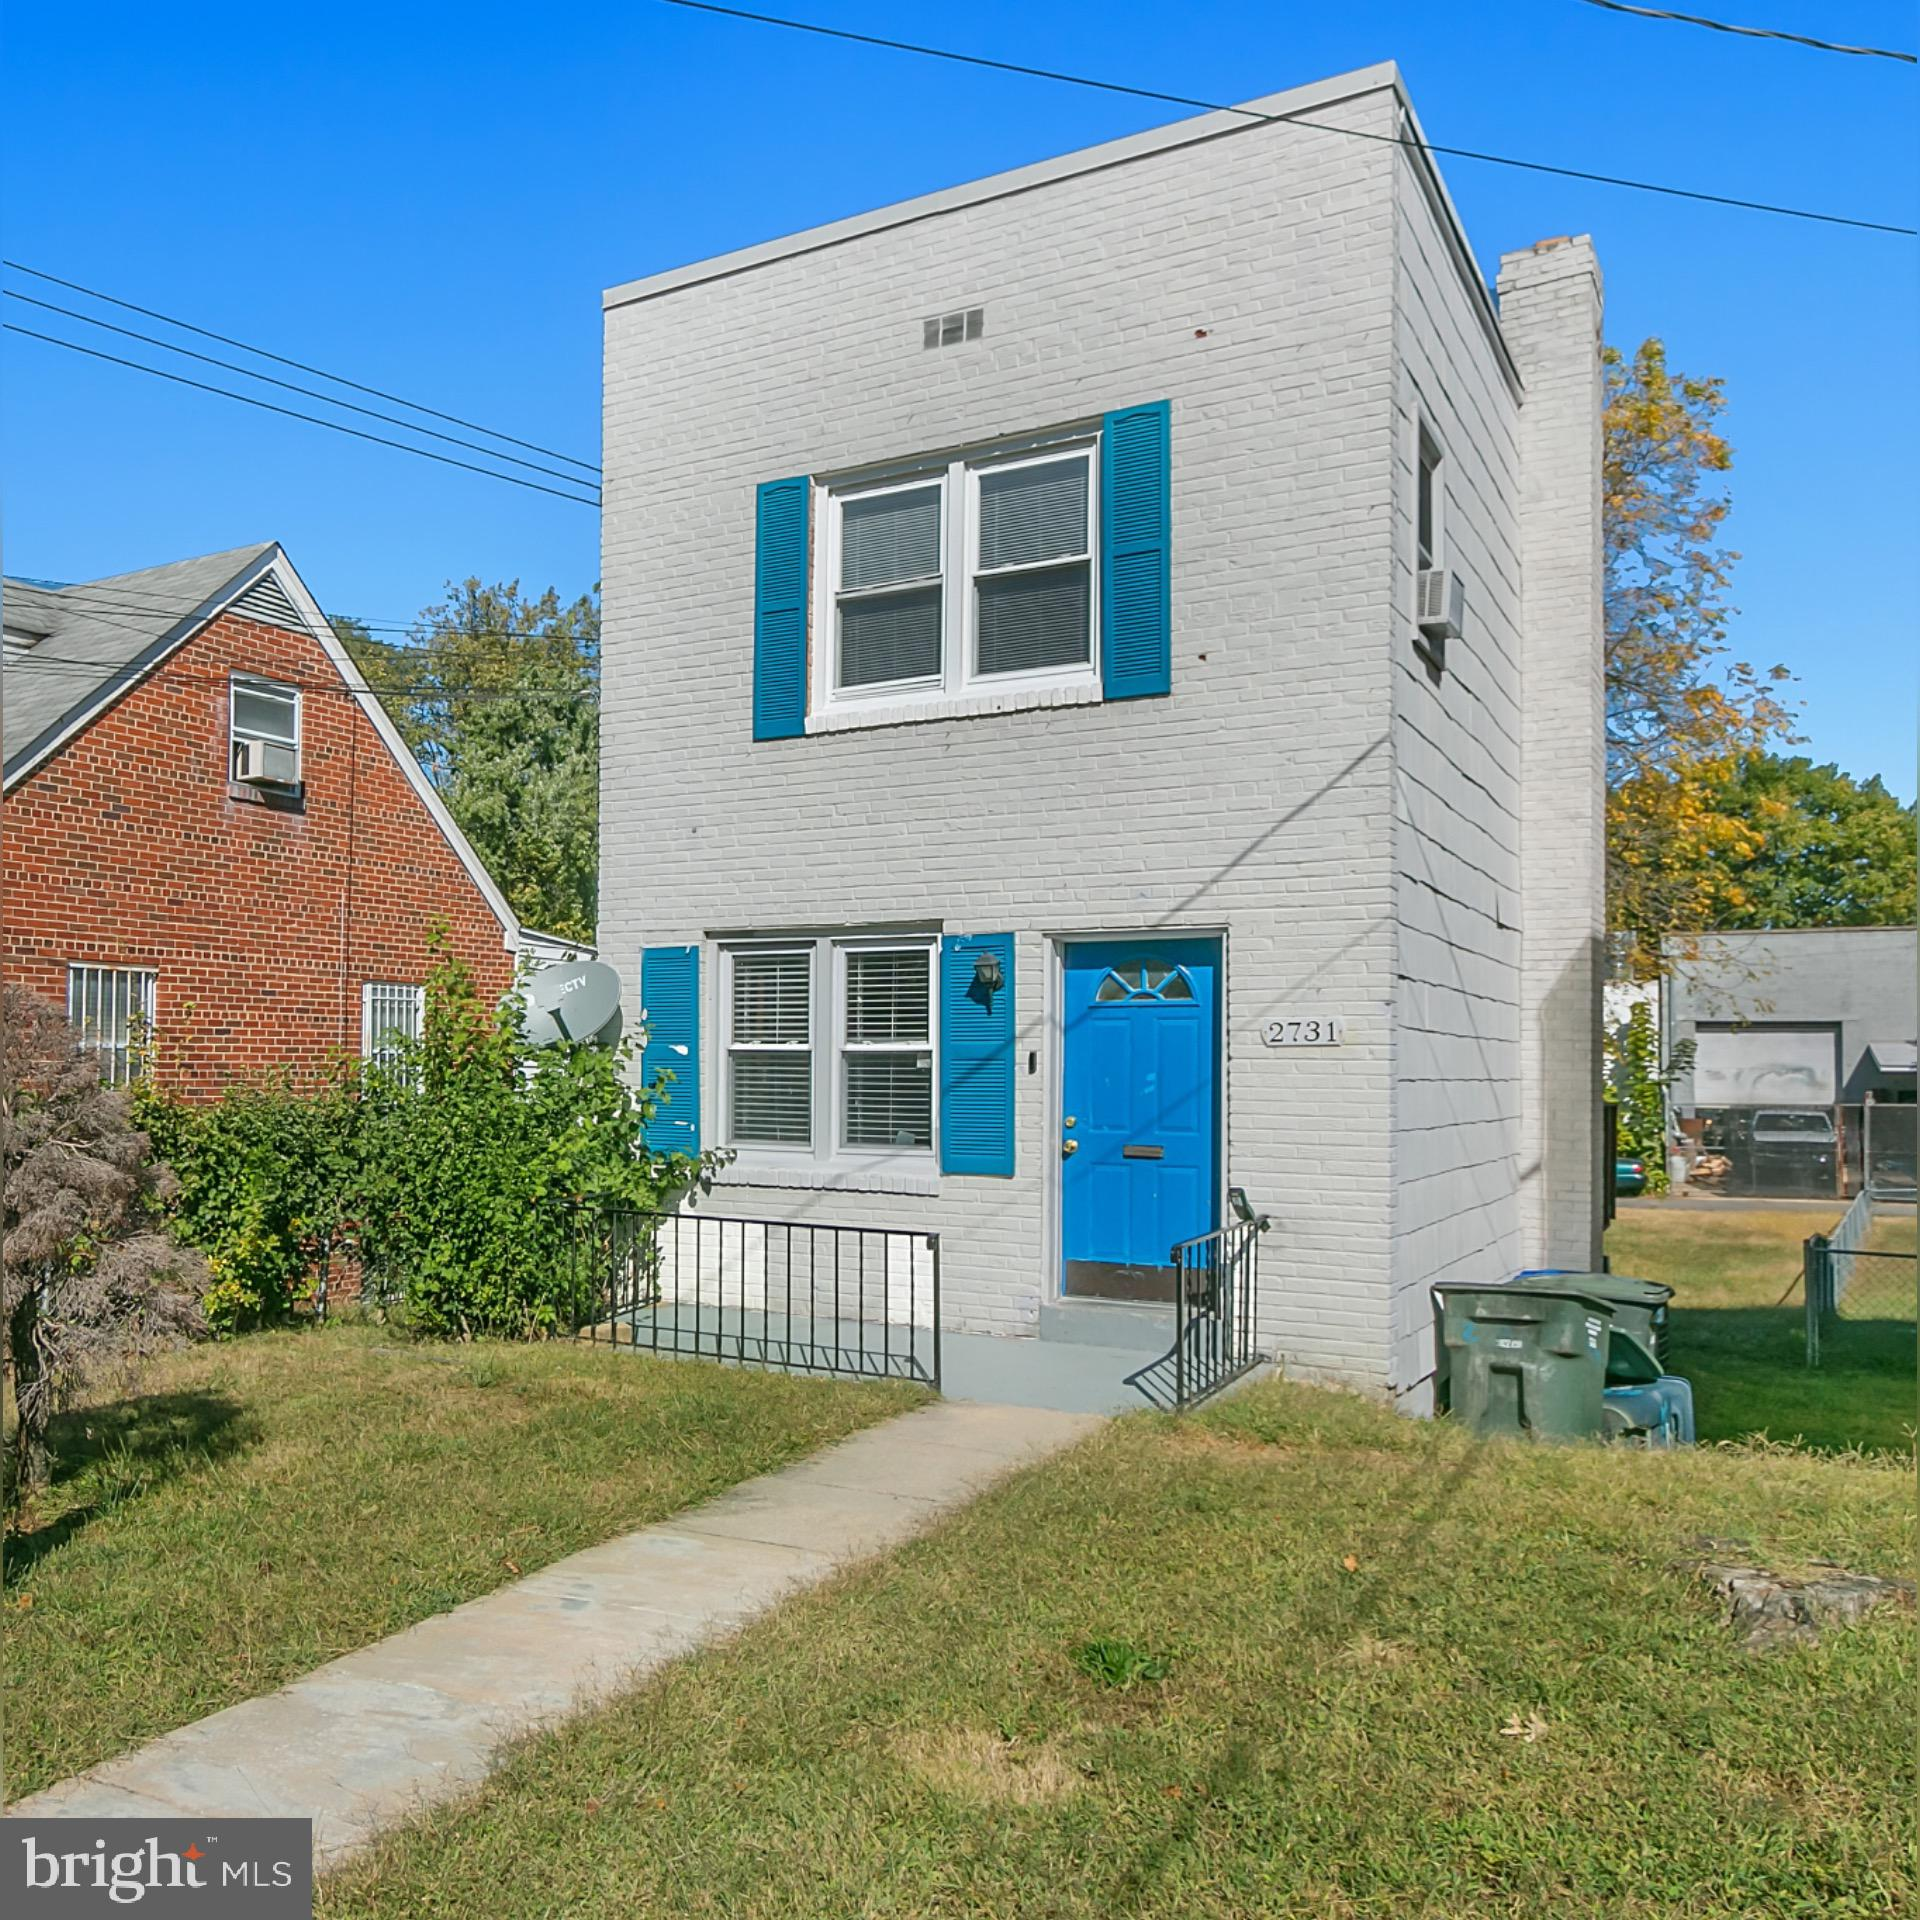 Sold As Is. Great opportunity to own a home in the sought after Woodridge Community! Two story, 1 Ba